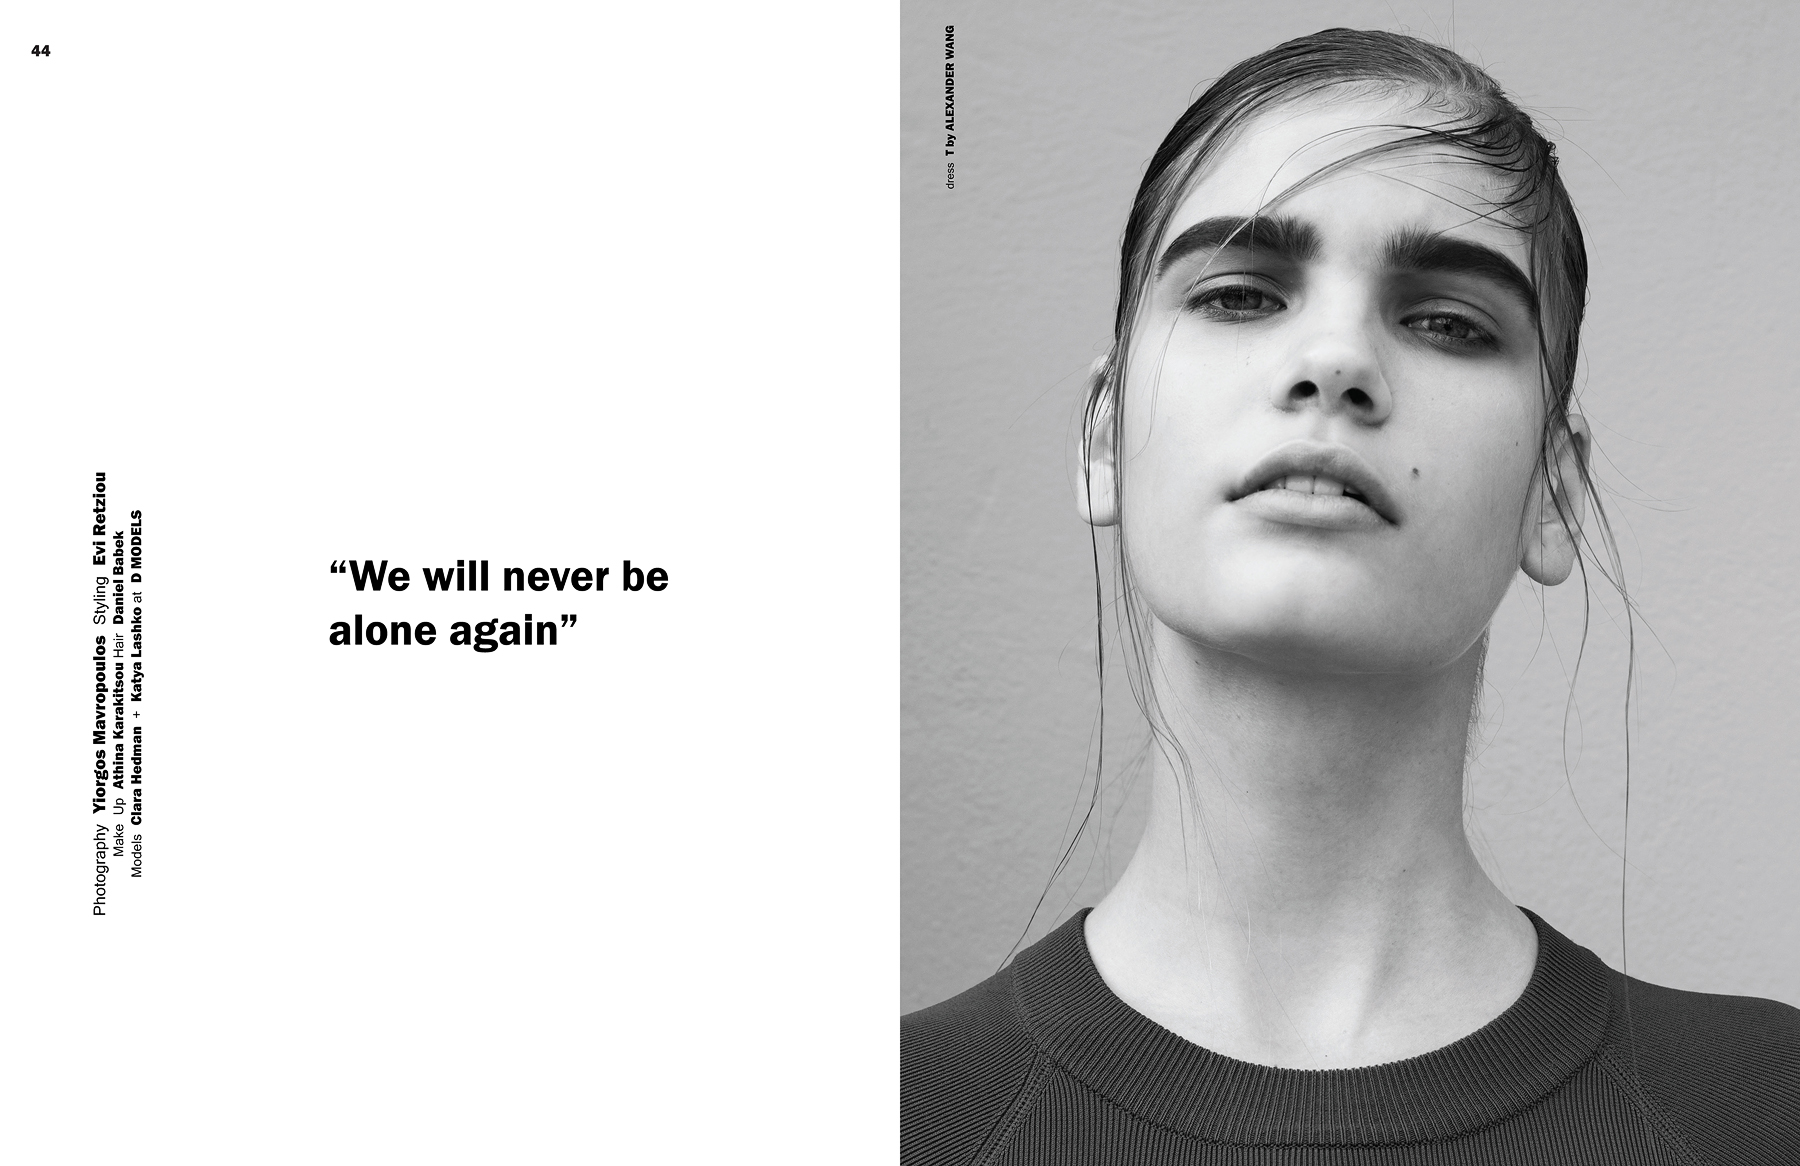 We Will Never Be Alone Again by Yiorgos Mavropoulos for CHASSEUR MAGAZINE issue #11 - YOURS WAS THE BODY